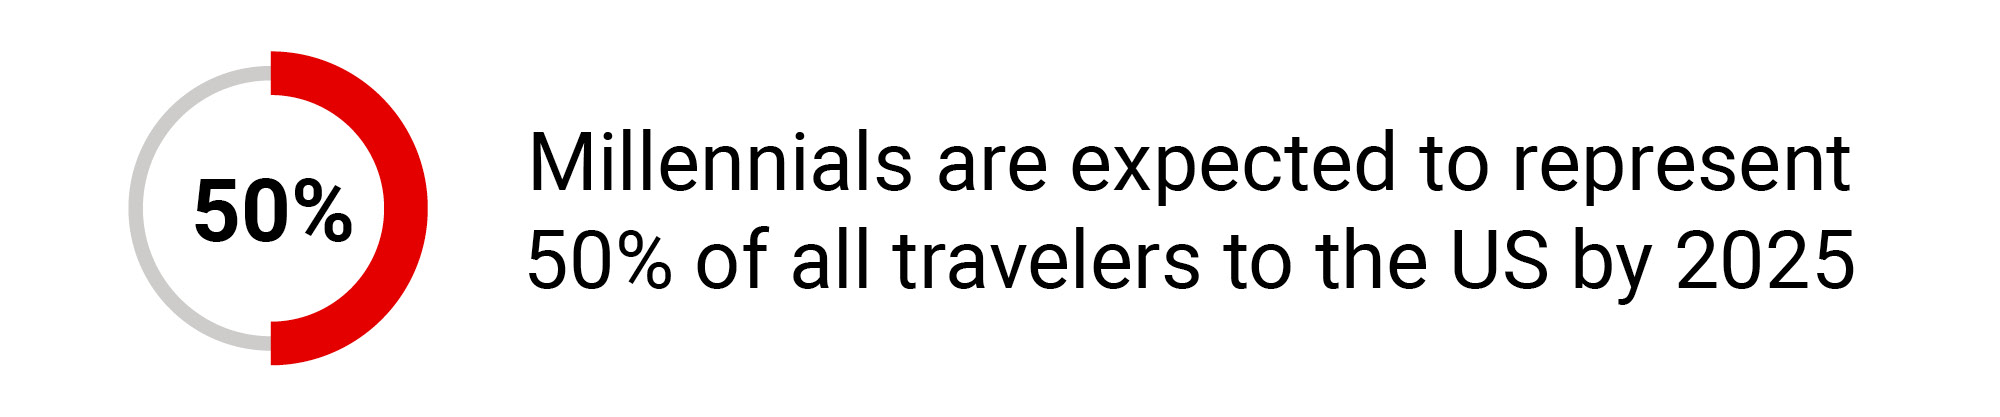 Millennials are expected to represent 50% of all travelers to the US by 2025